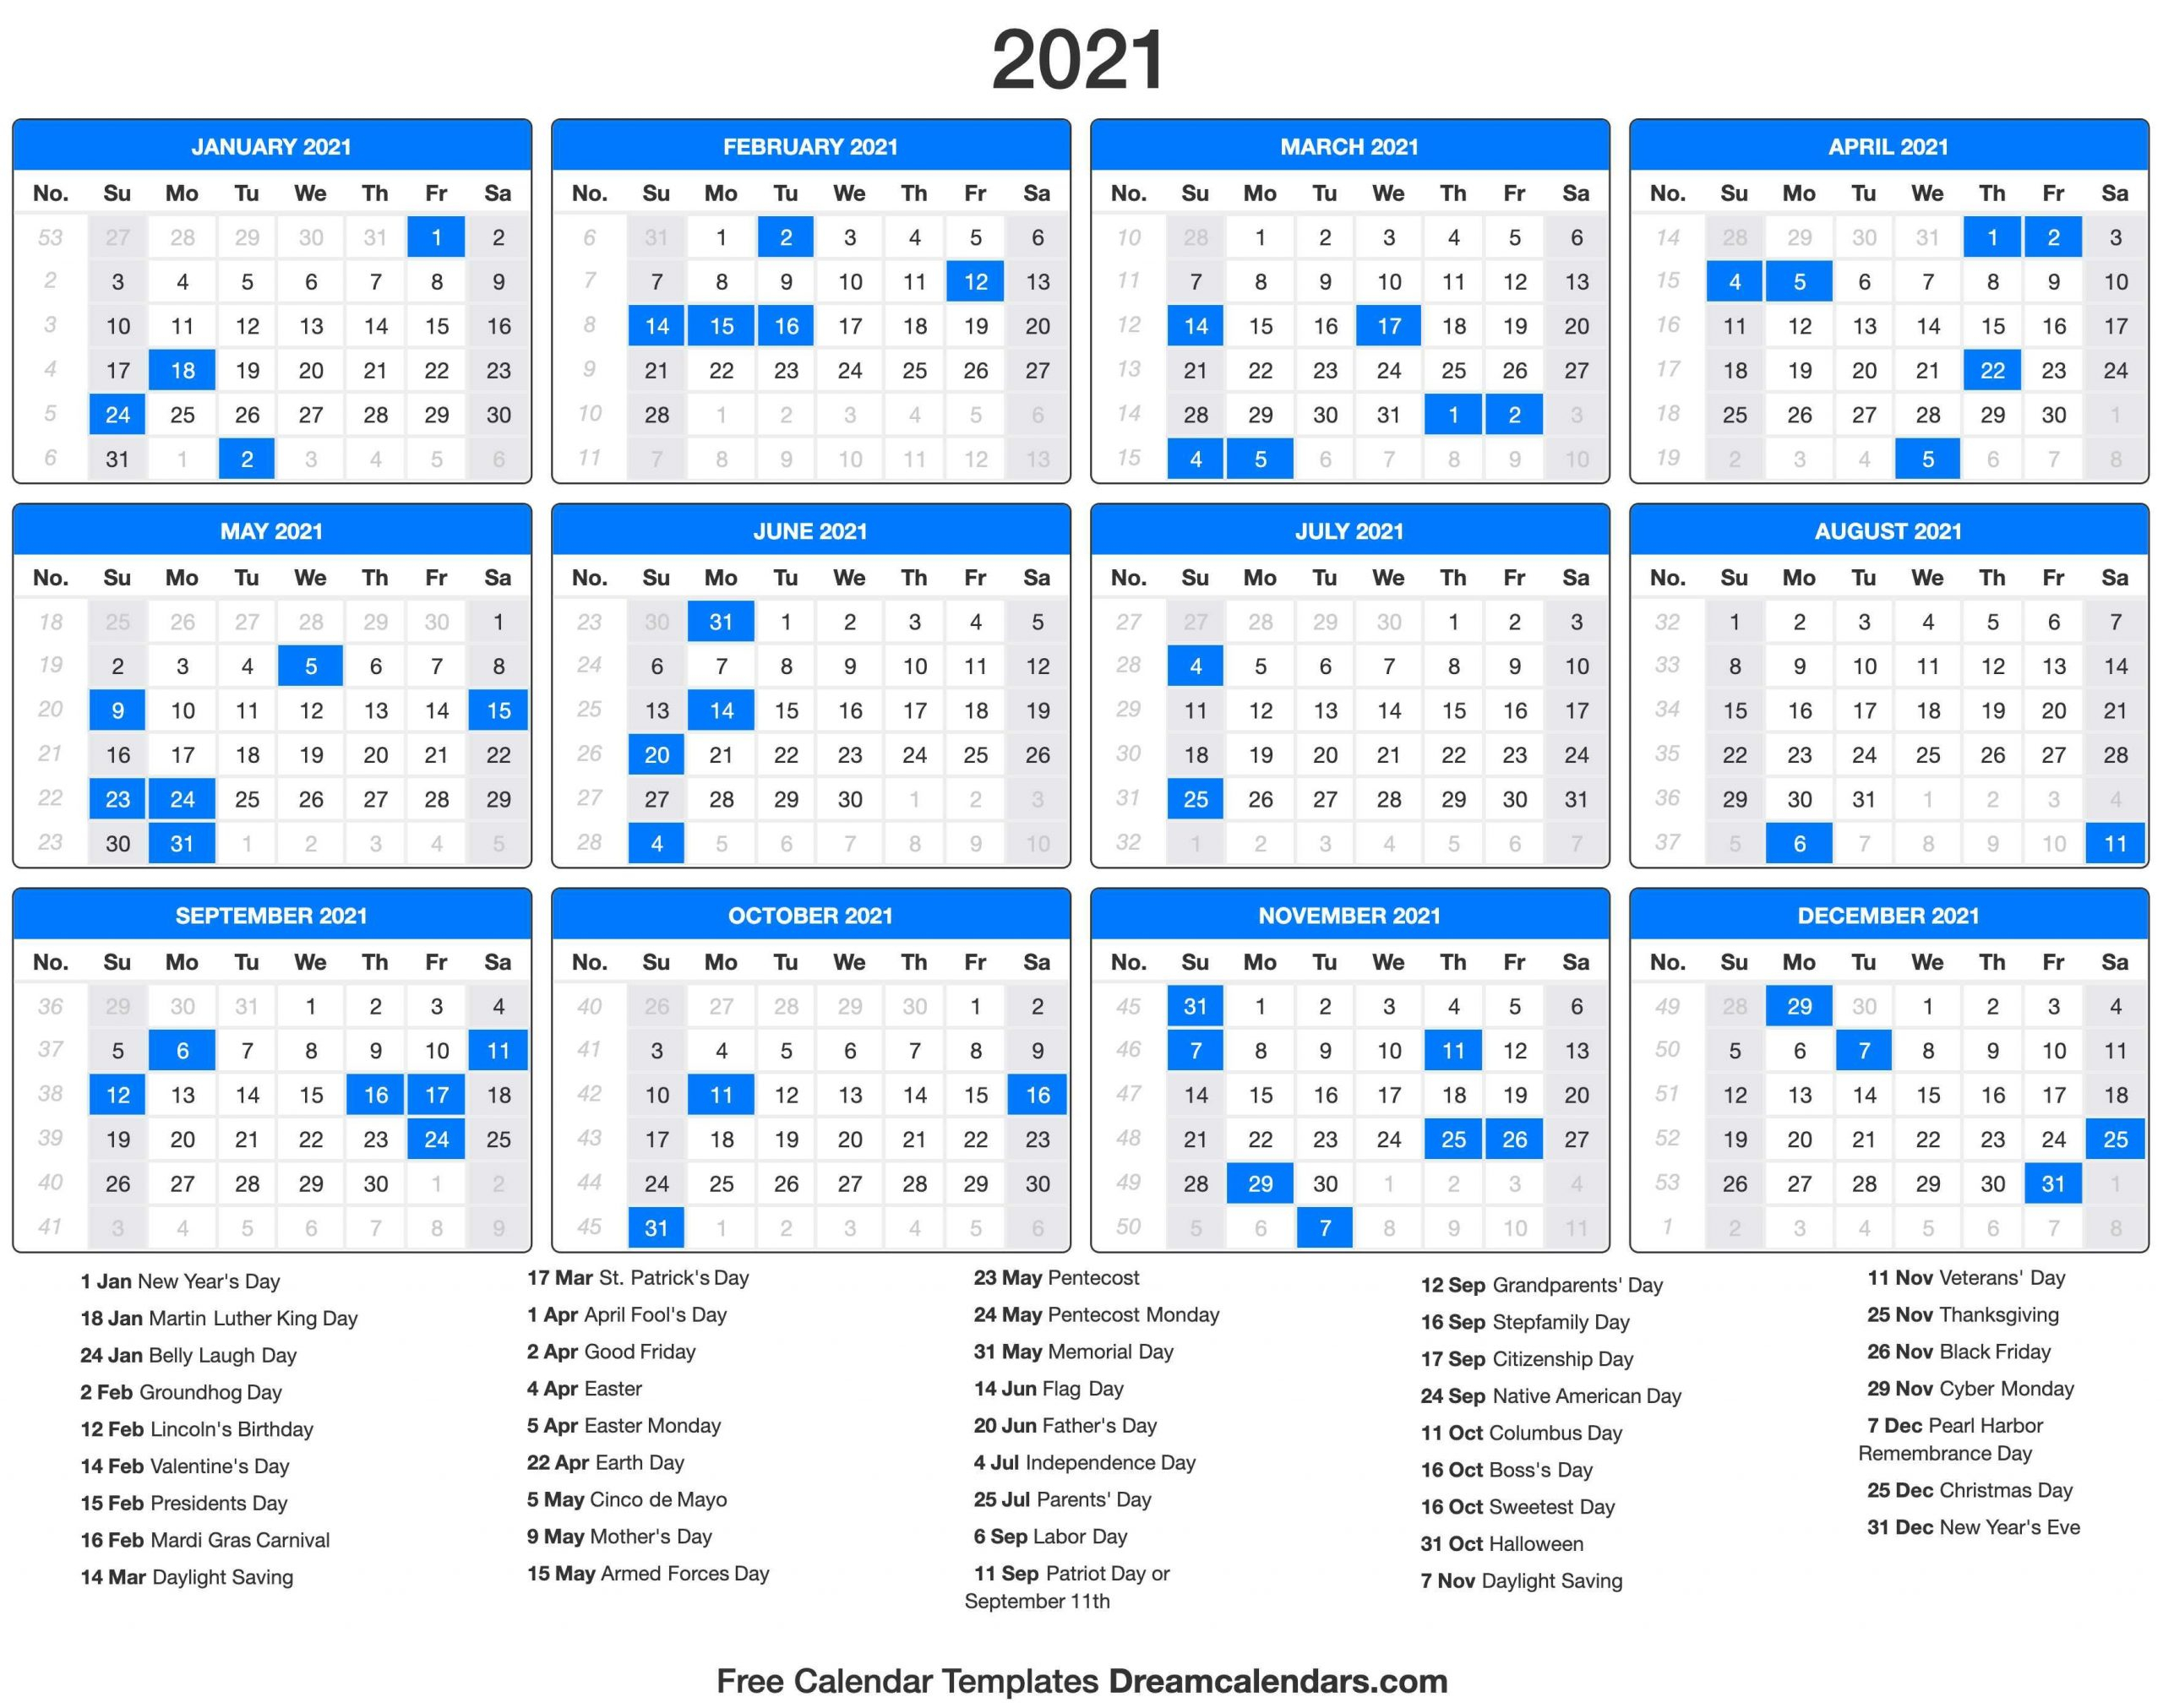 Holiday Calendar 2021: Vacation Closed! These Are Special